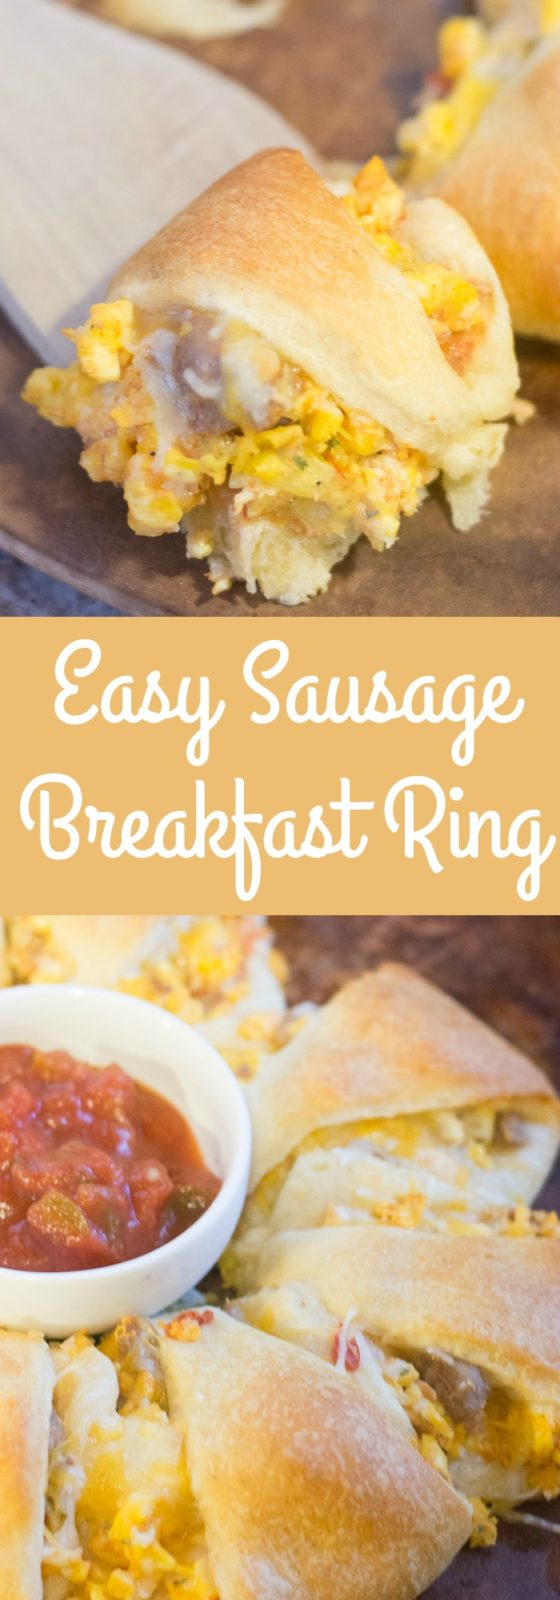 A filling and delicious breakfast recipe - an easy sausage breakfast ring made with crescent rolls!